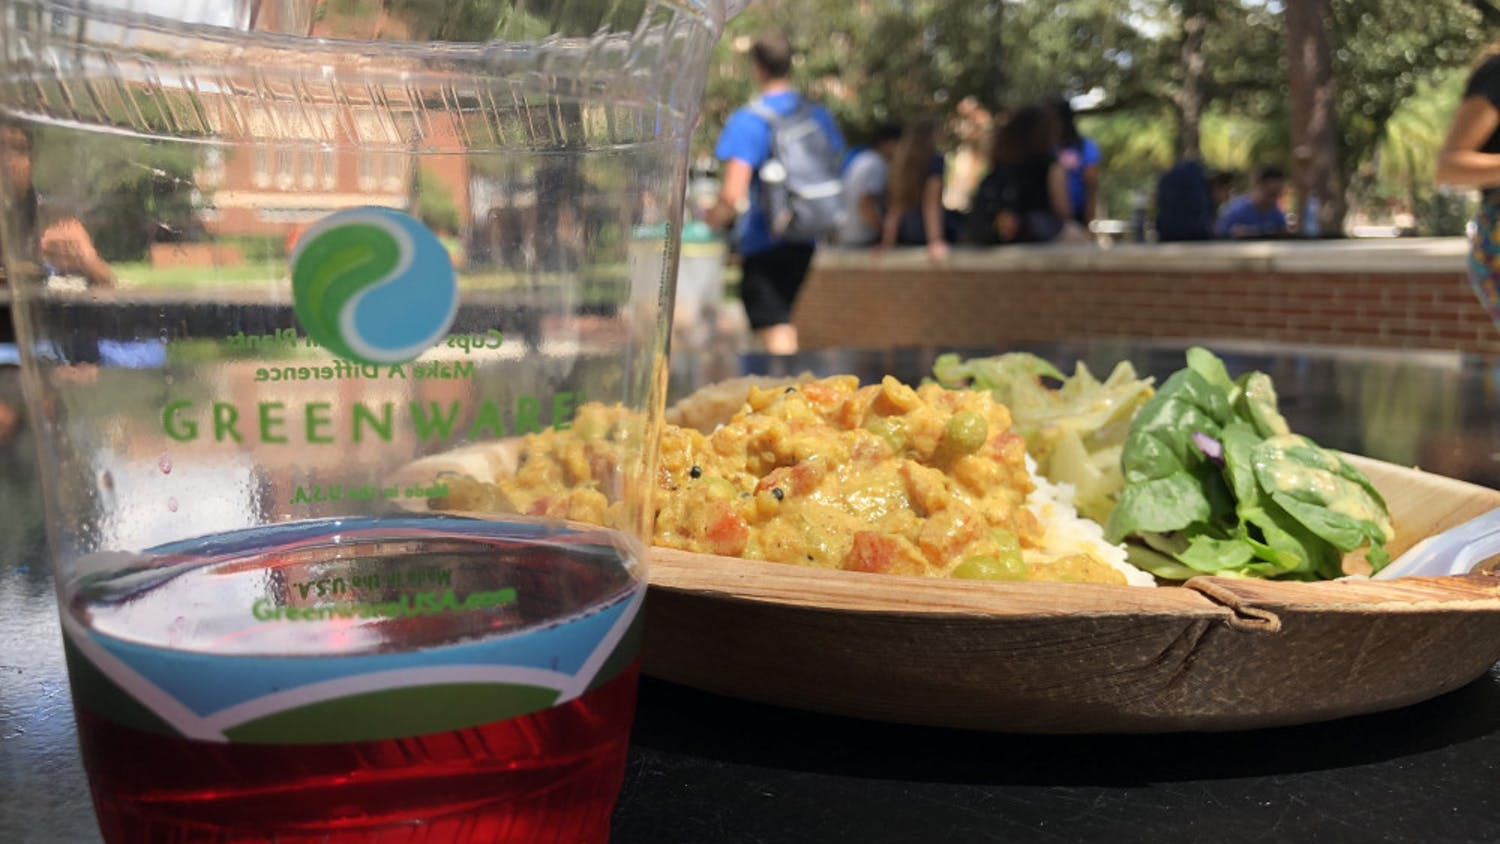 Krishna Lunch is served using all compostable materials, including cups, plates, forks and napkins. It will serve tea in plastic compost able cups until its usual paper cups are back in stock.